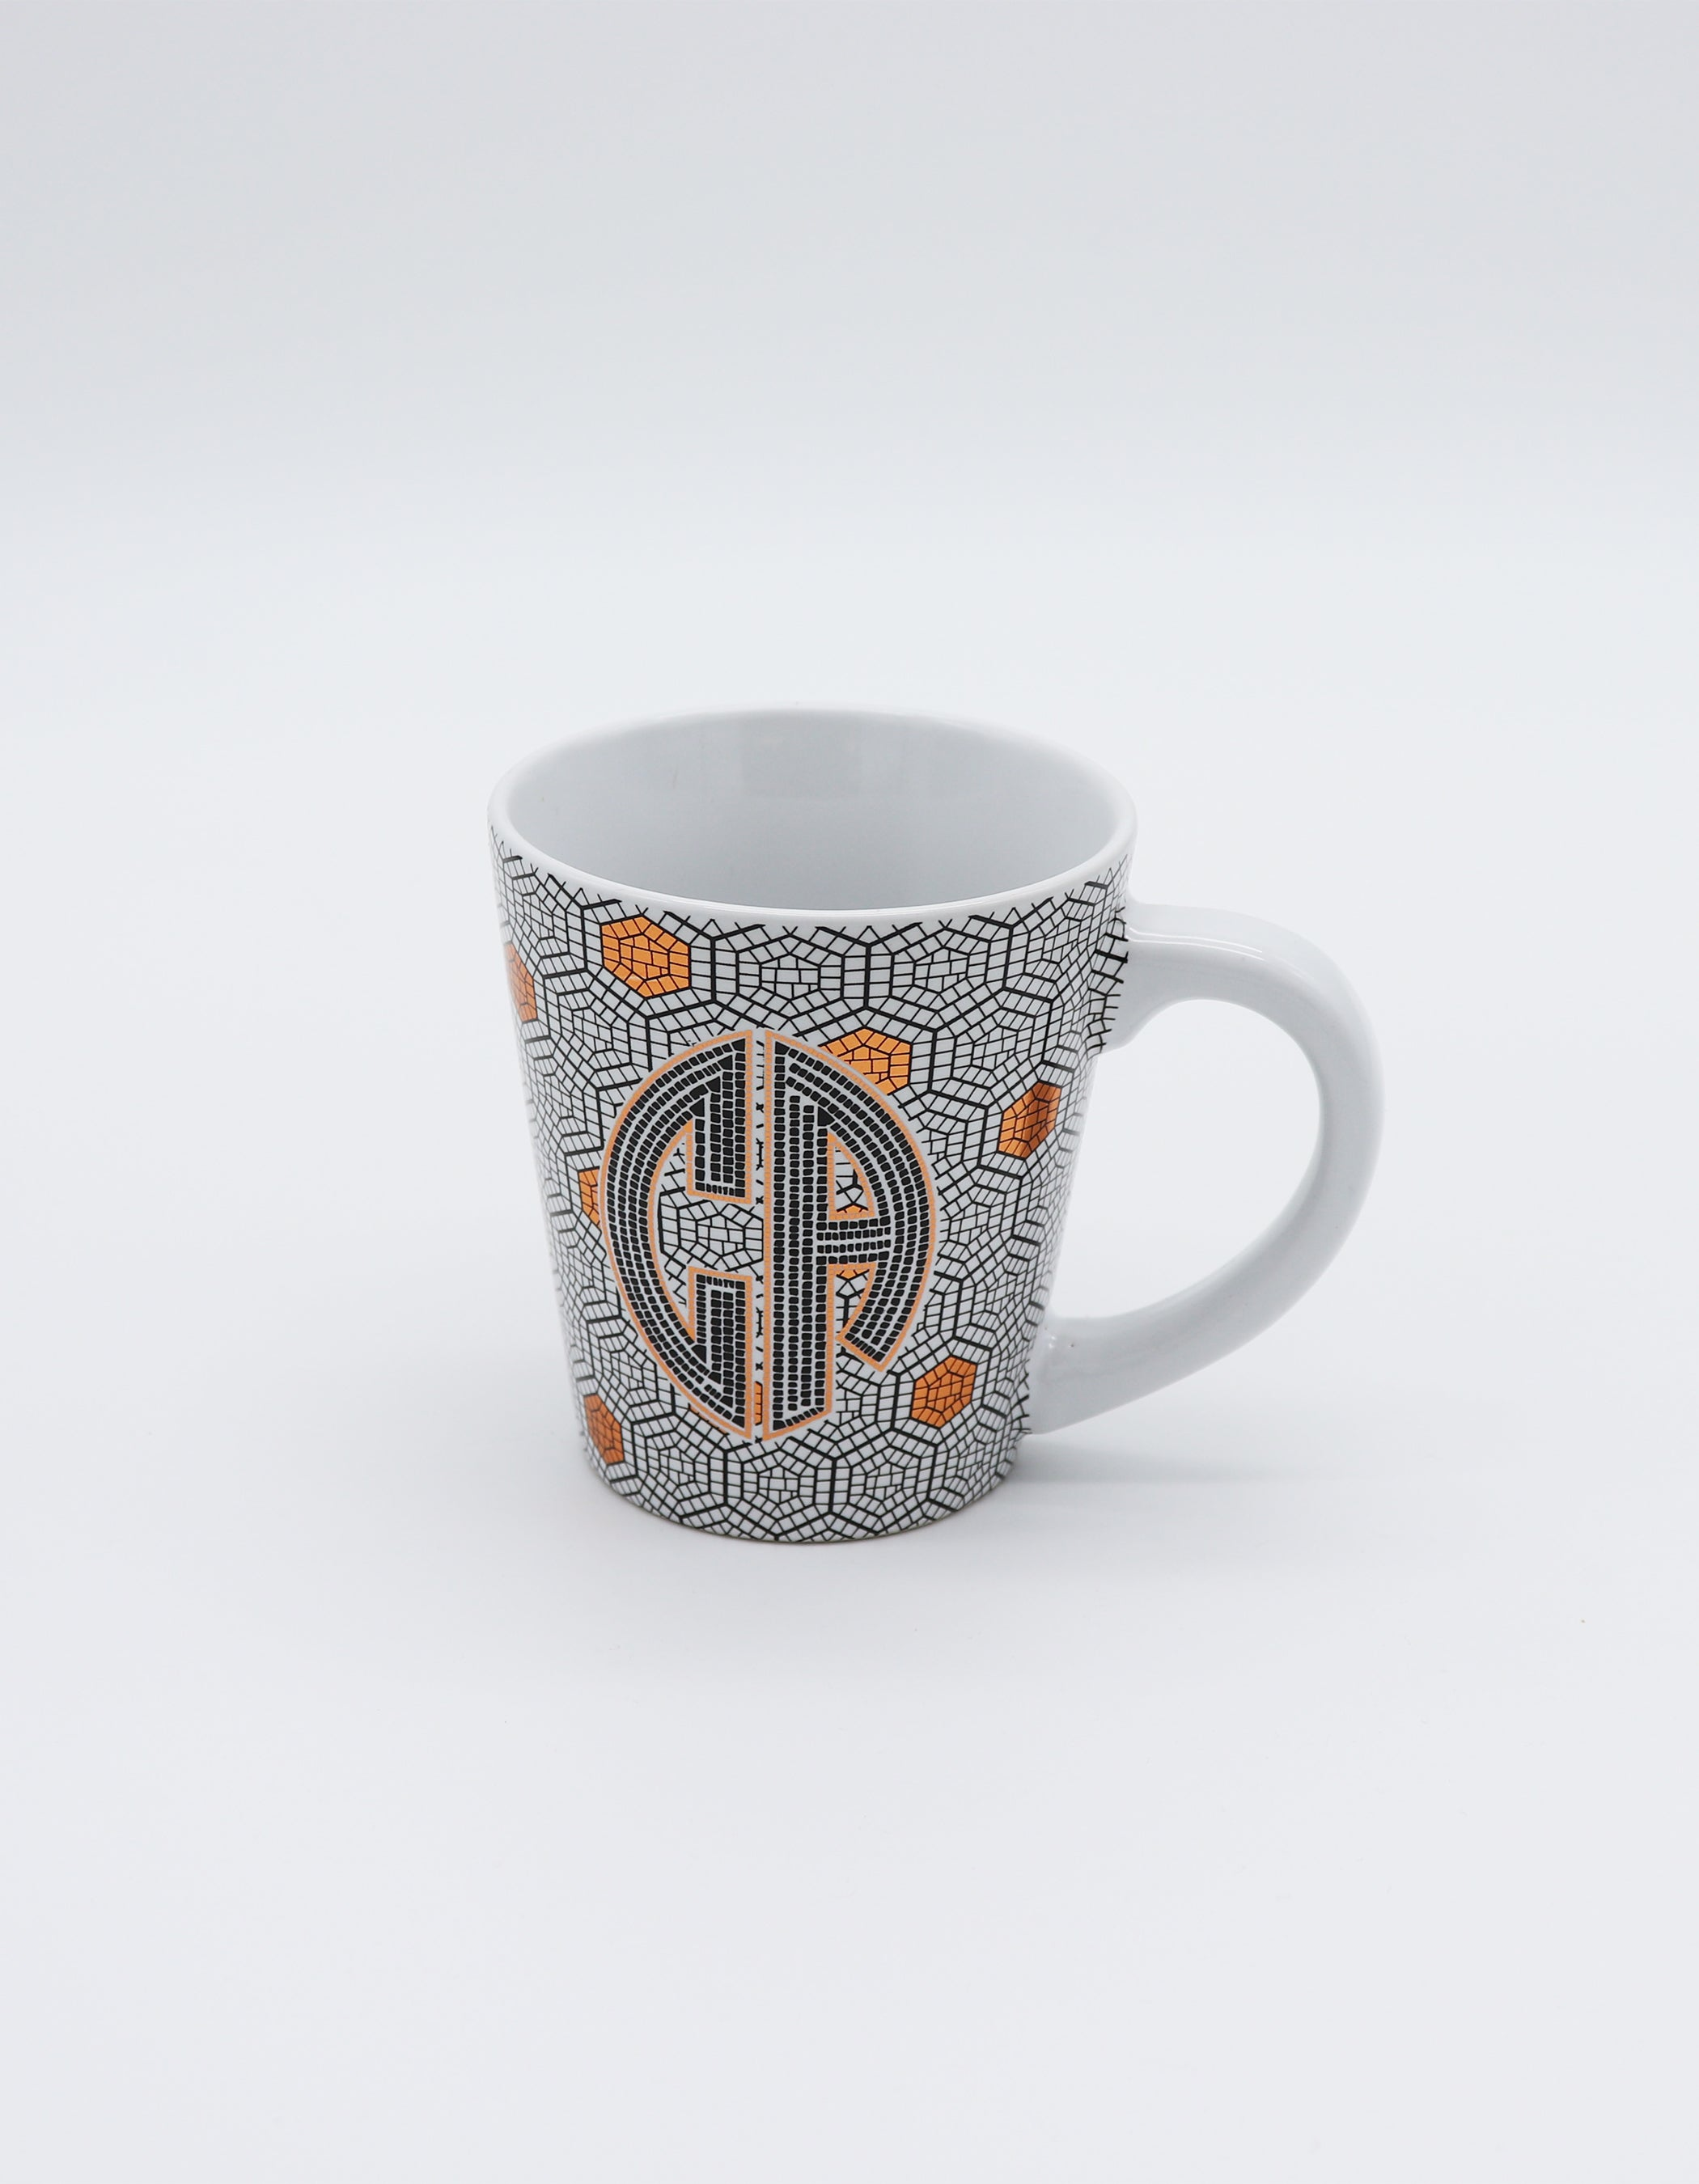 Trumpet mug with Tile-Like Design wrapped around with CA Monogram Logo & Bronze Foil Highlights for coffee or tea. Great gift idea.